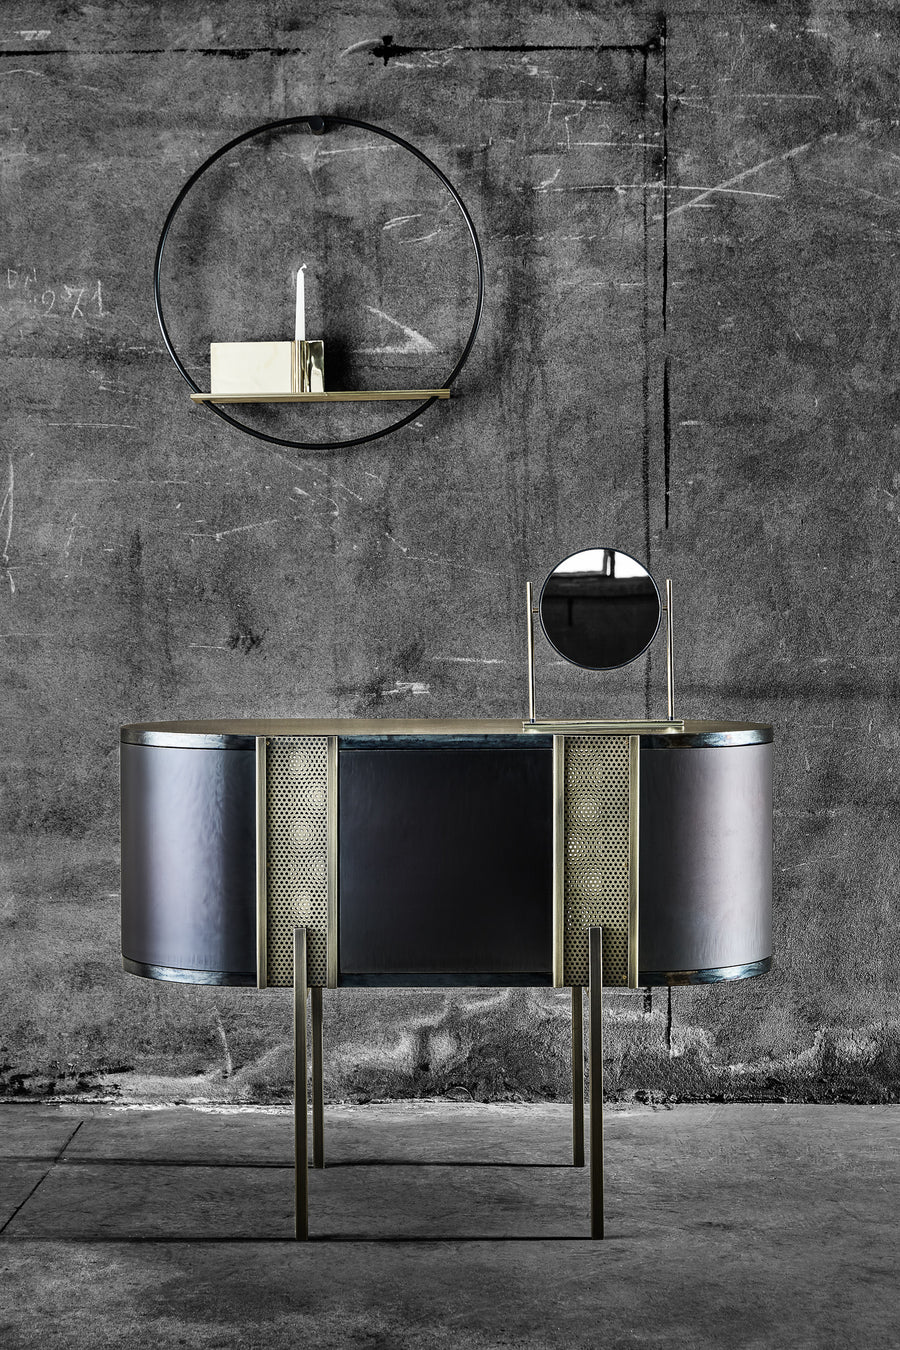 BE-LIEVE Consolle by Lorenza Bozzoli for Mingardo - DUPLEX DESIGN